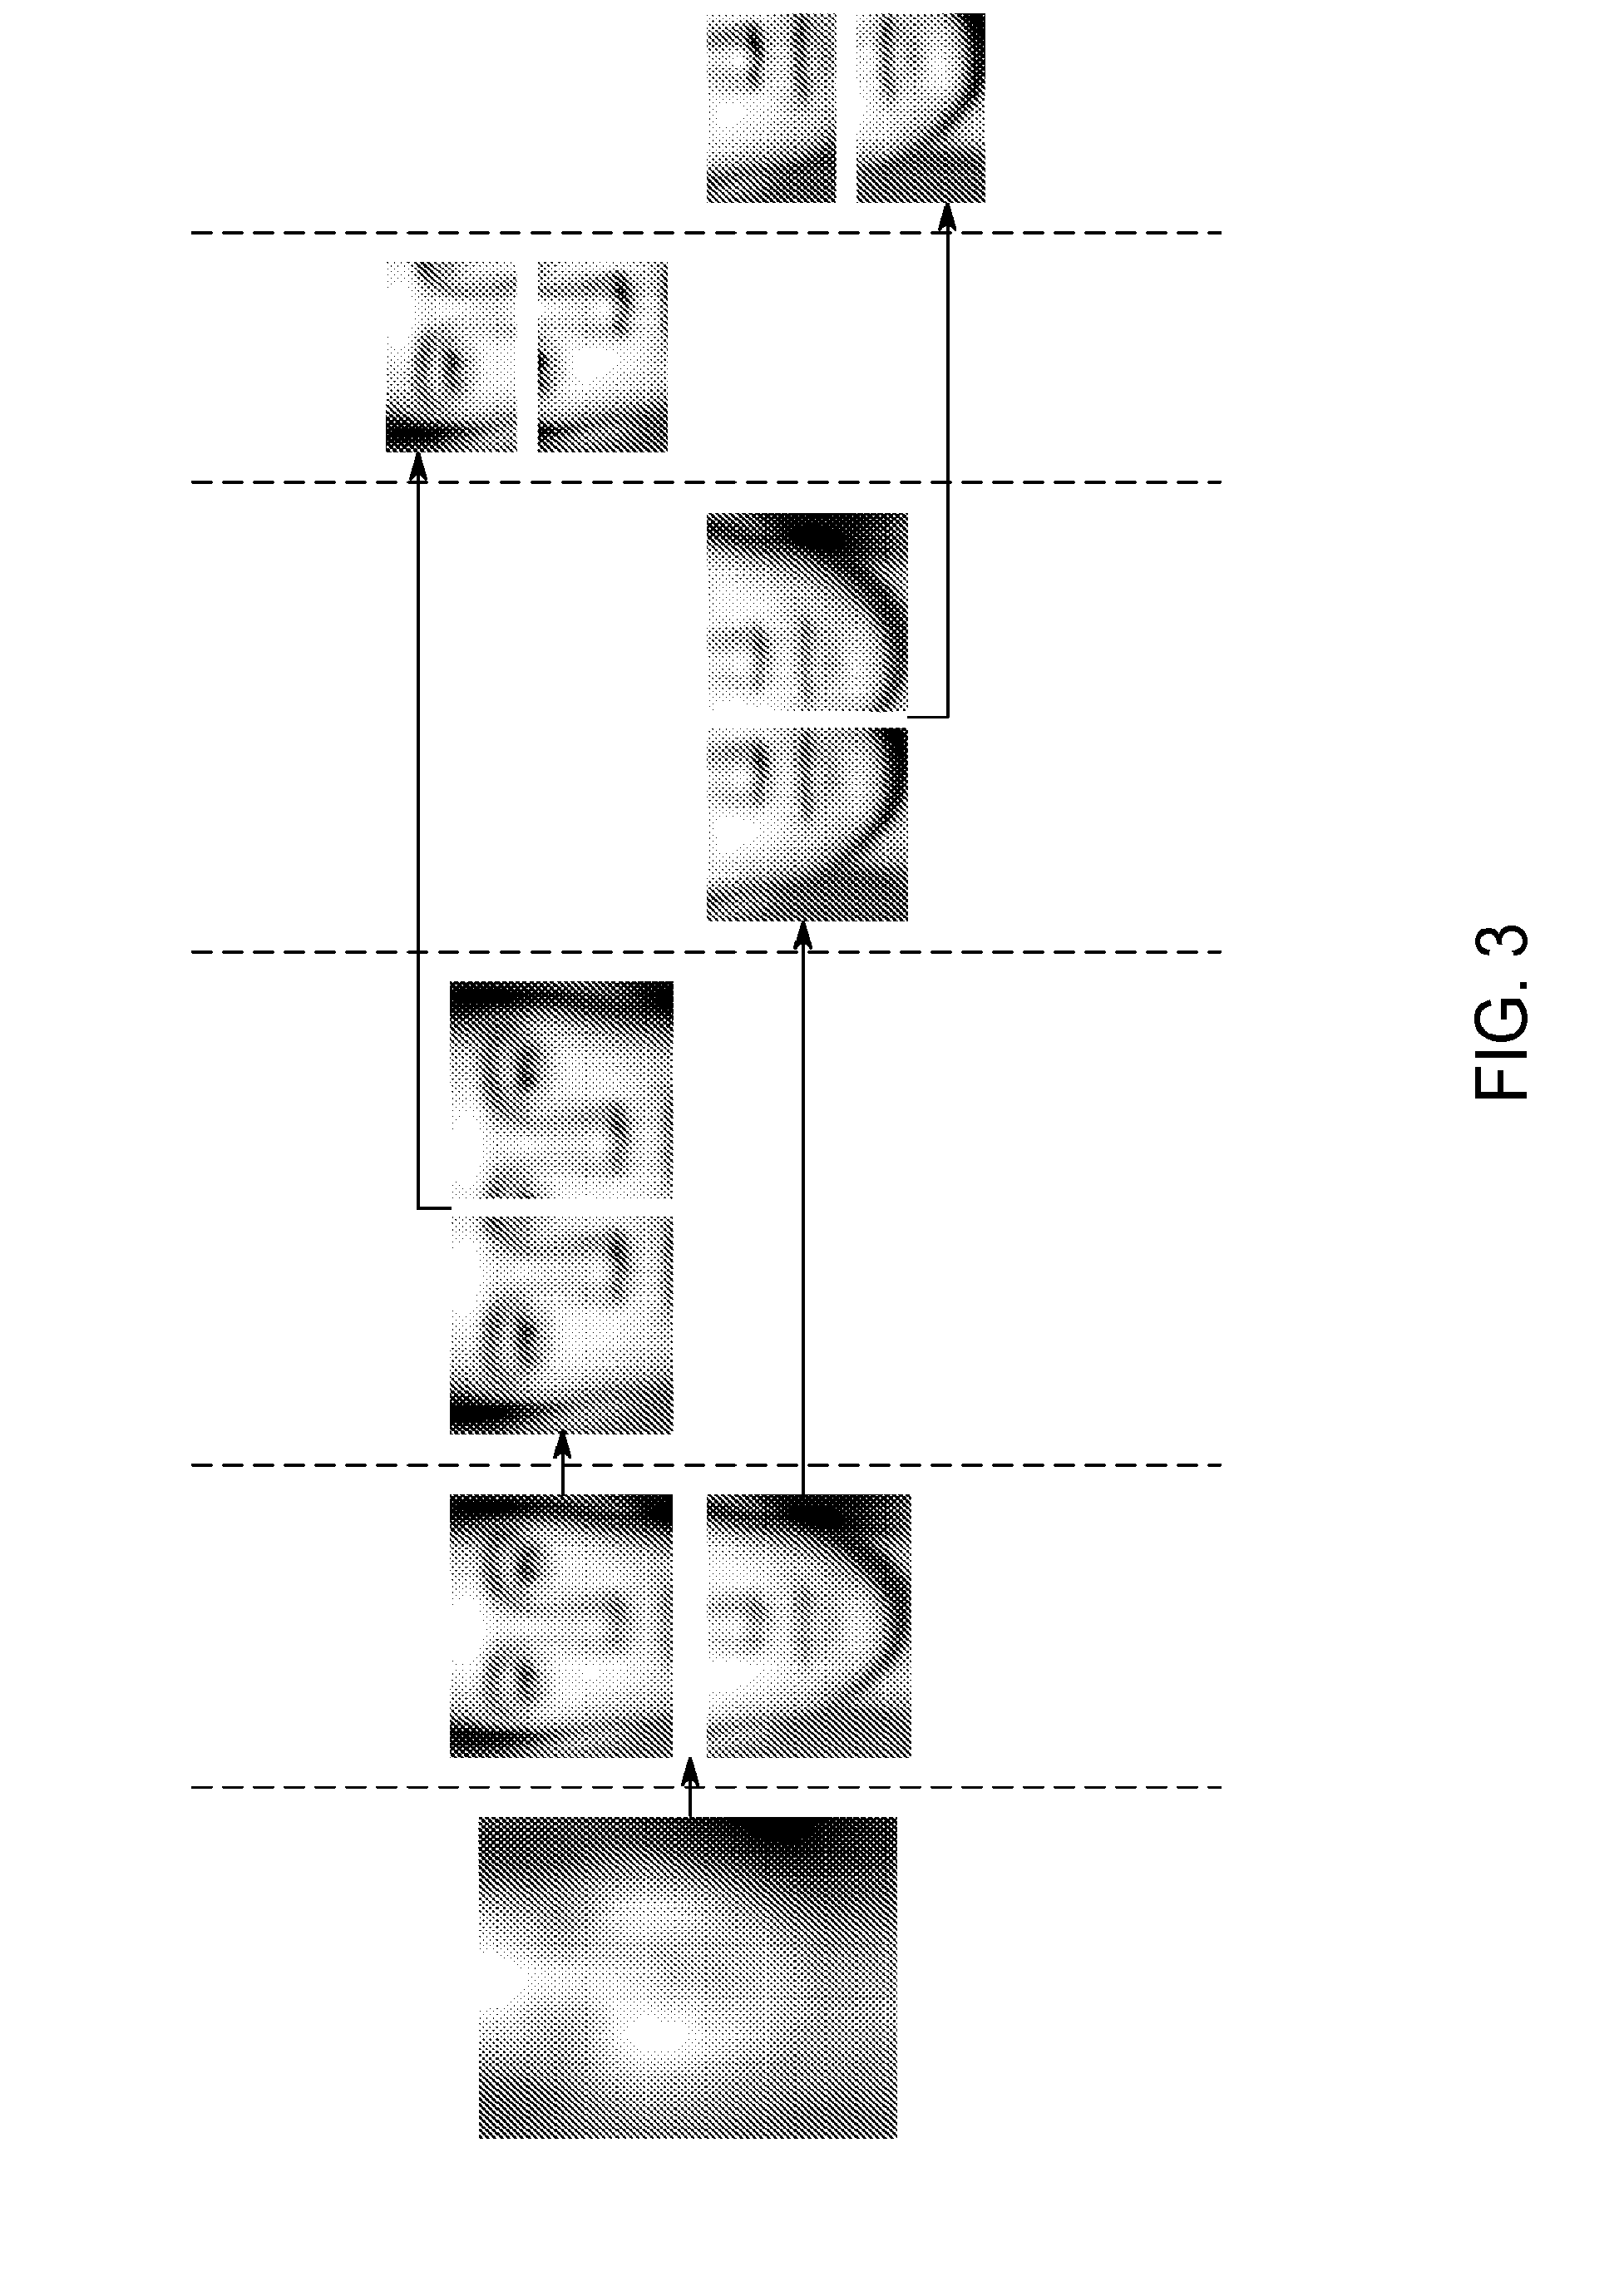 patente us system and method for automatic landmark patent drawing